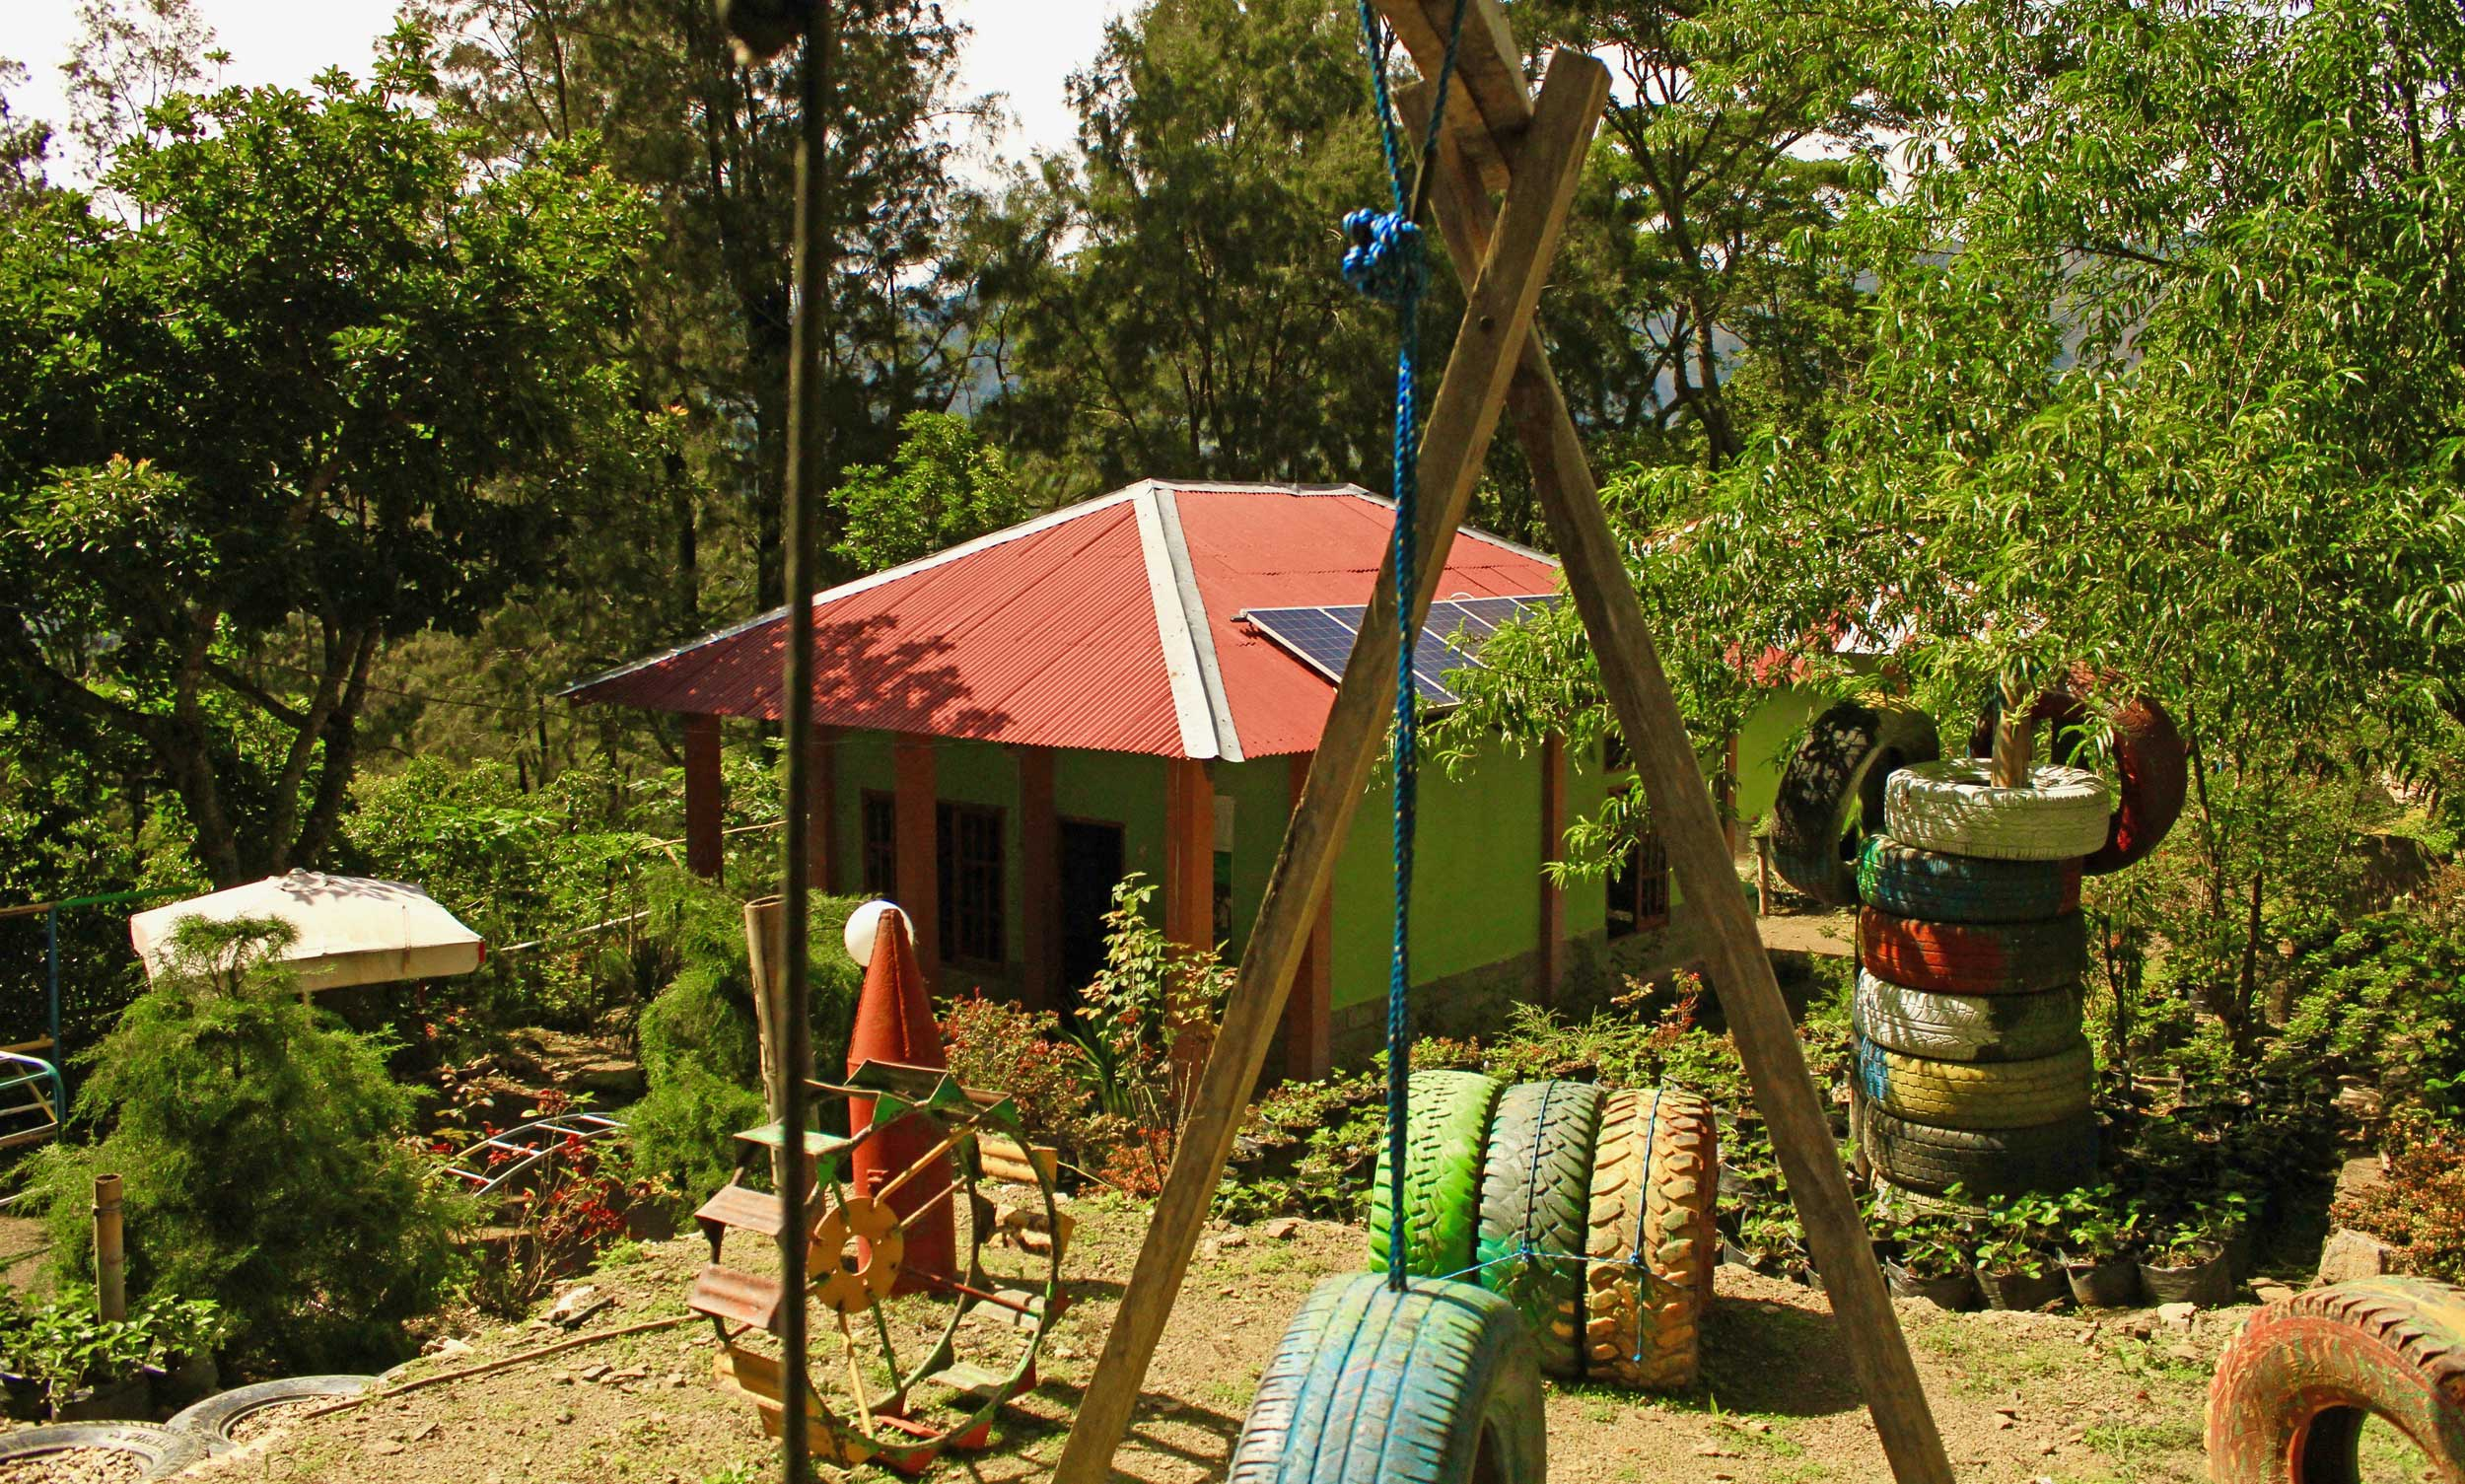 A playground with tyres for equipment and a green building with solar panels on its red roof, Timor-Leste